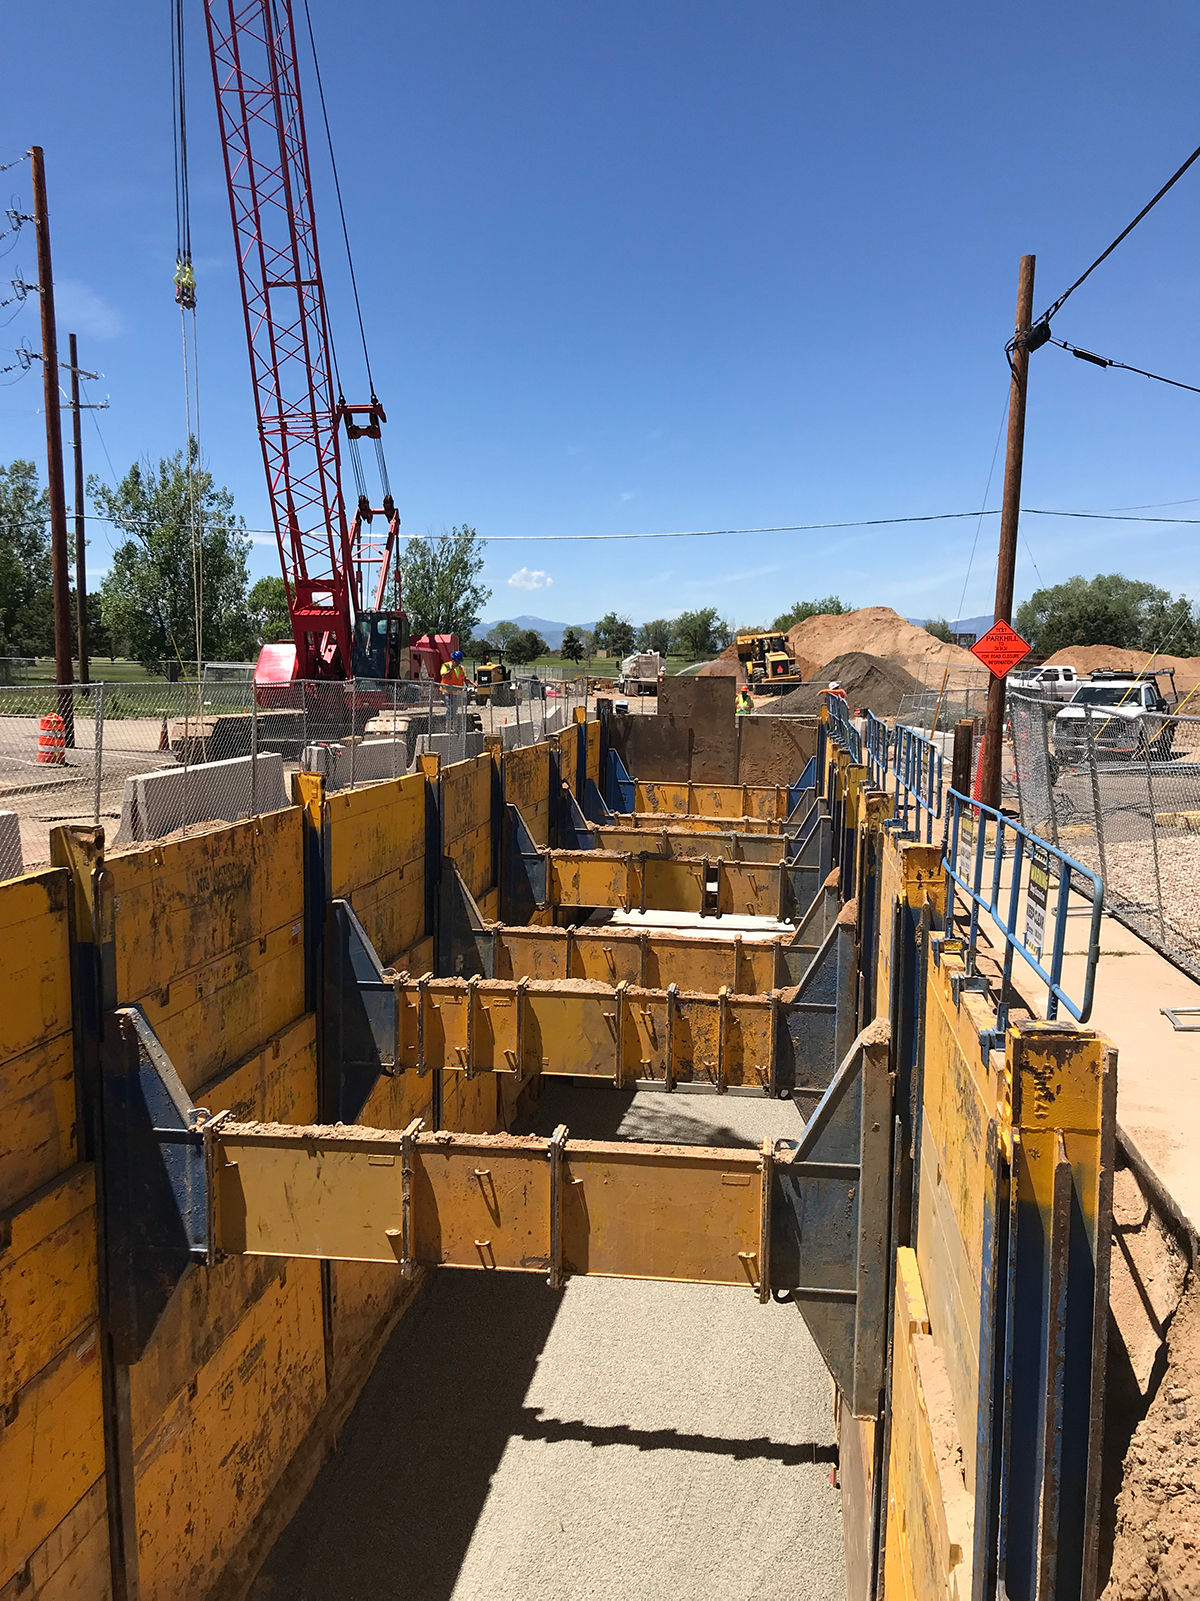 construction site with large box culvert structures in deep trench along roadway